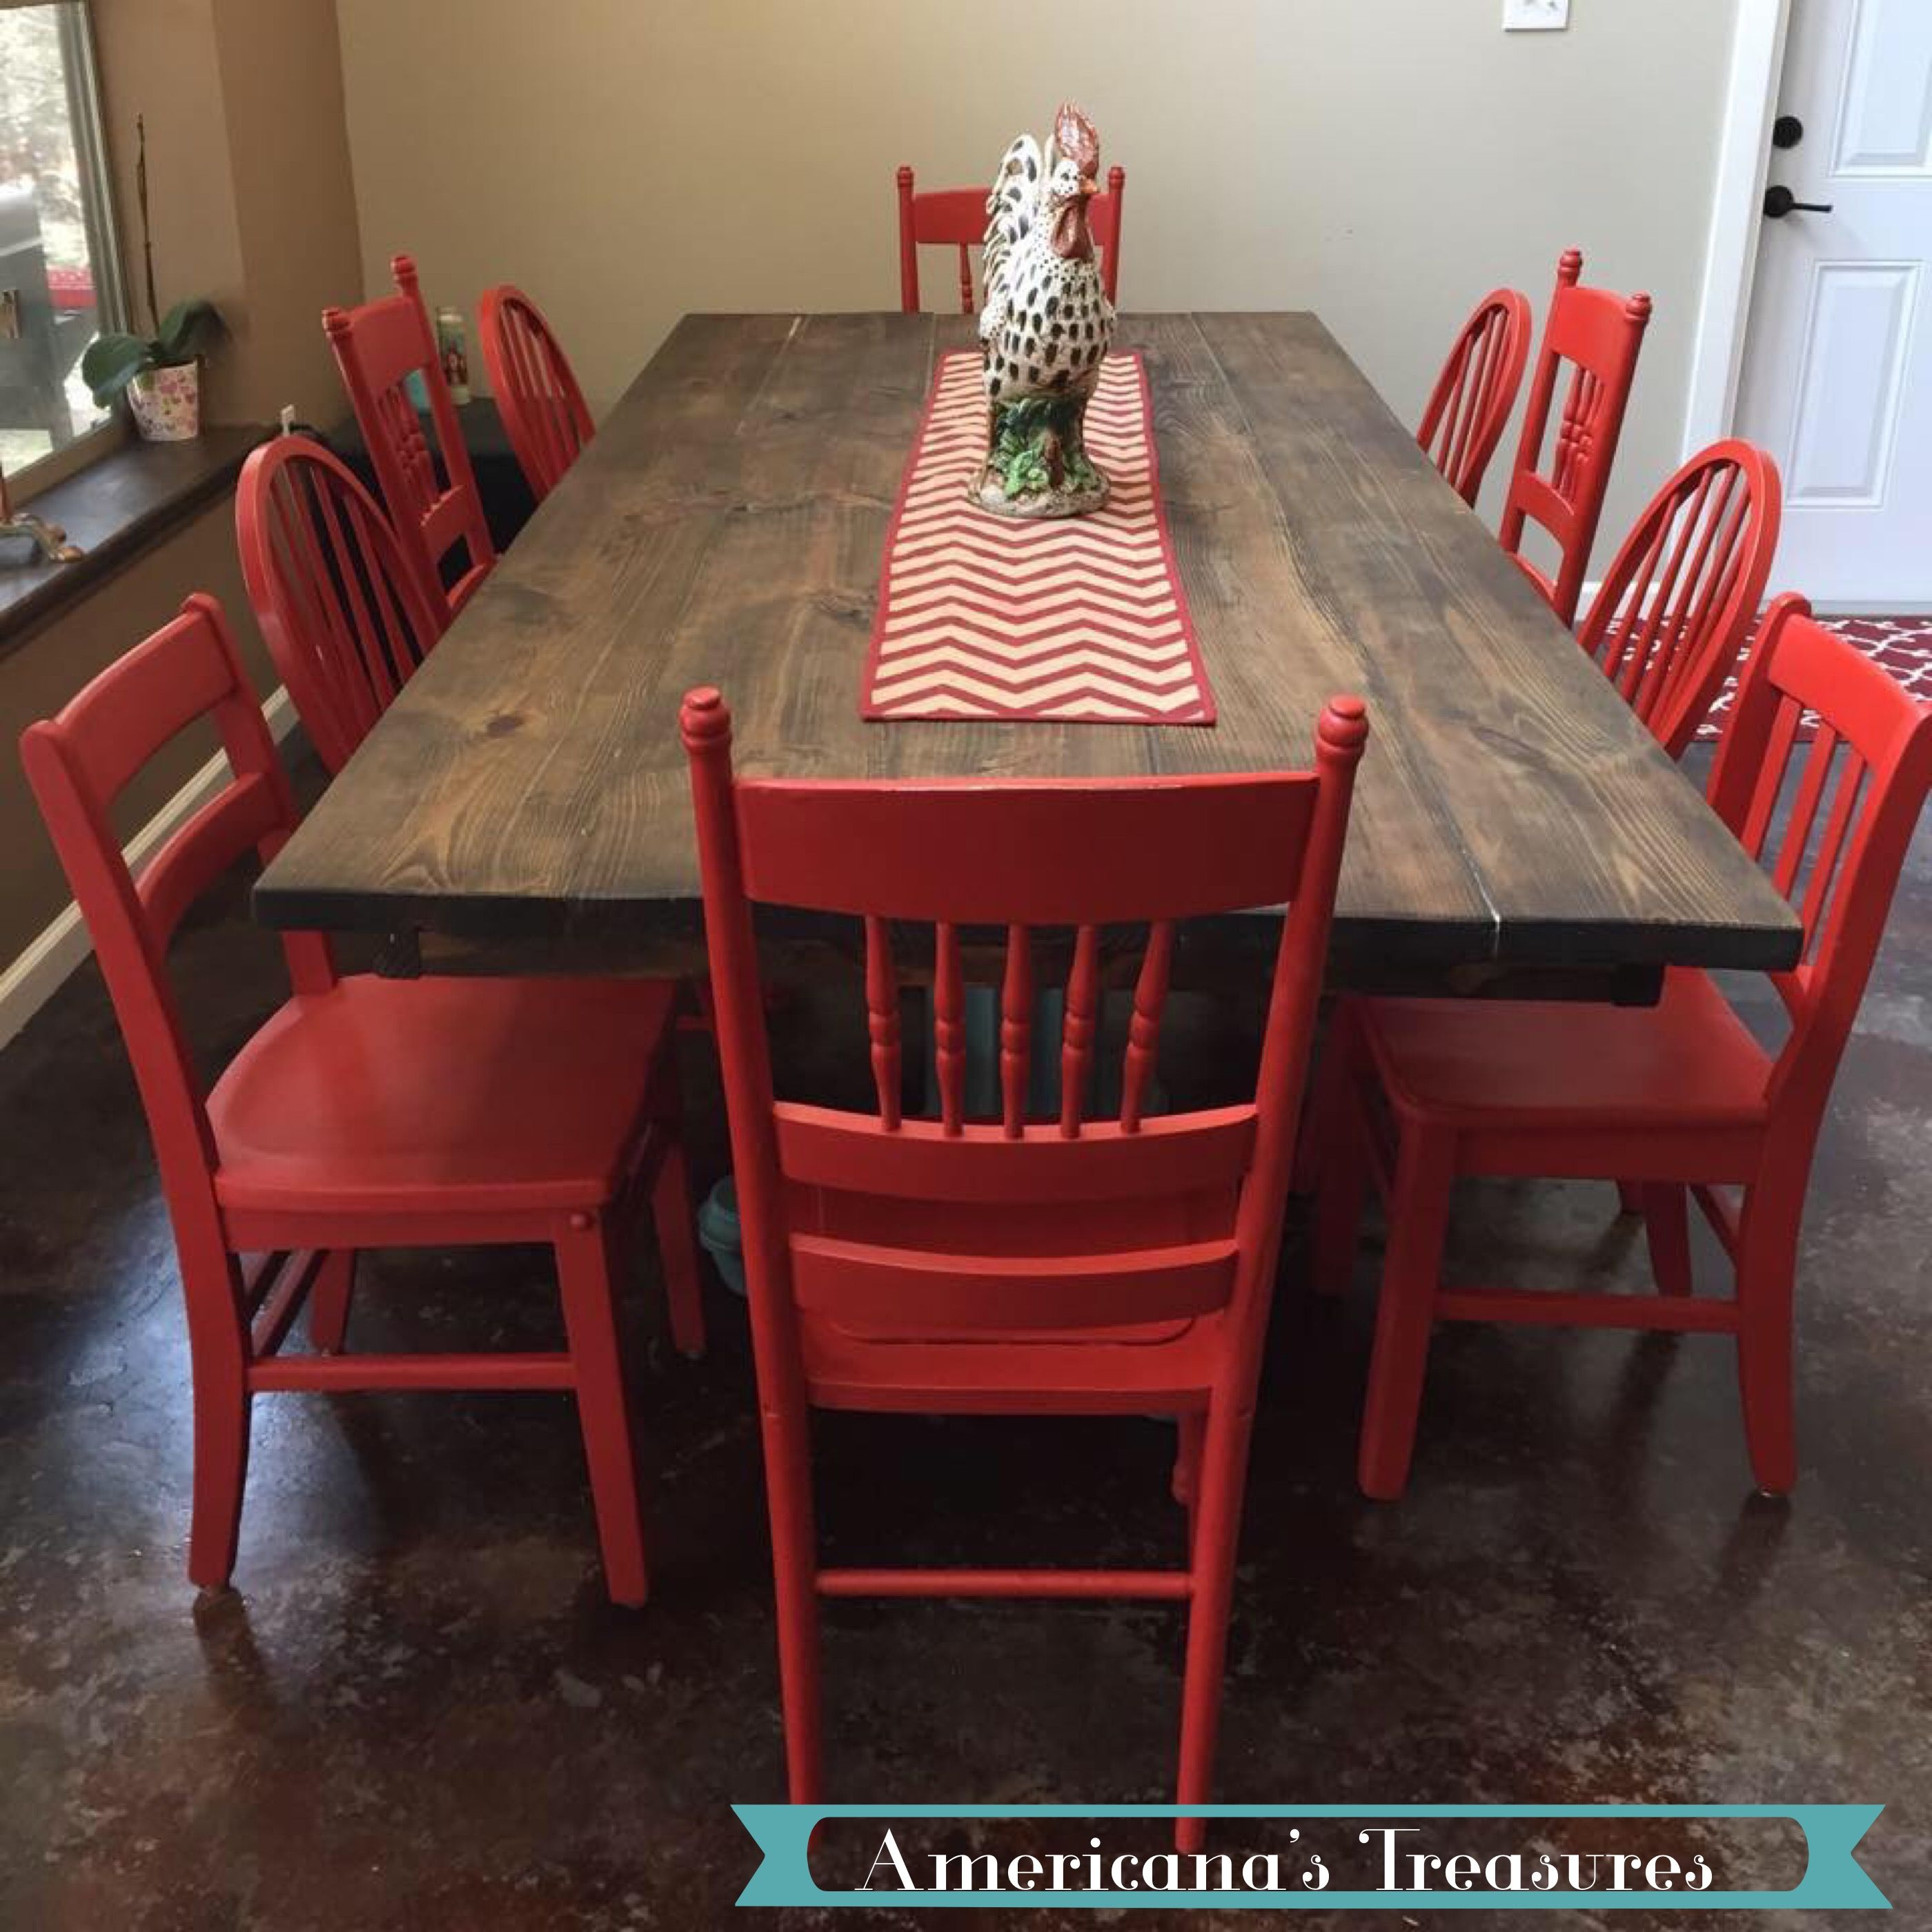 Red Mix N Match Chairs For The Perfect Rustic Or Eclectic Look